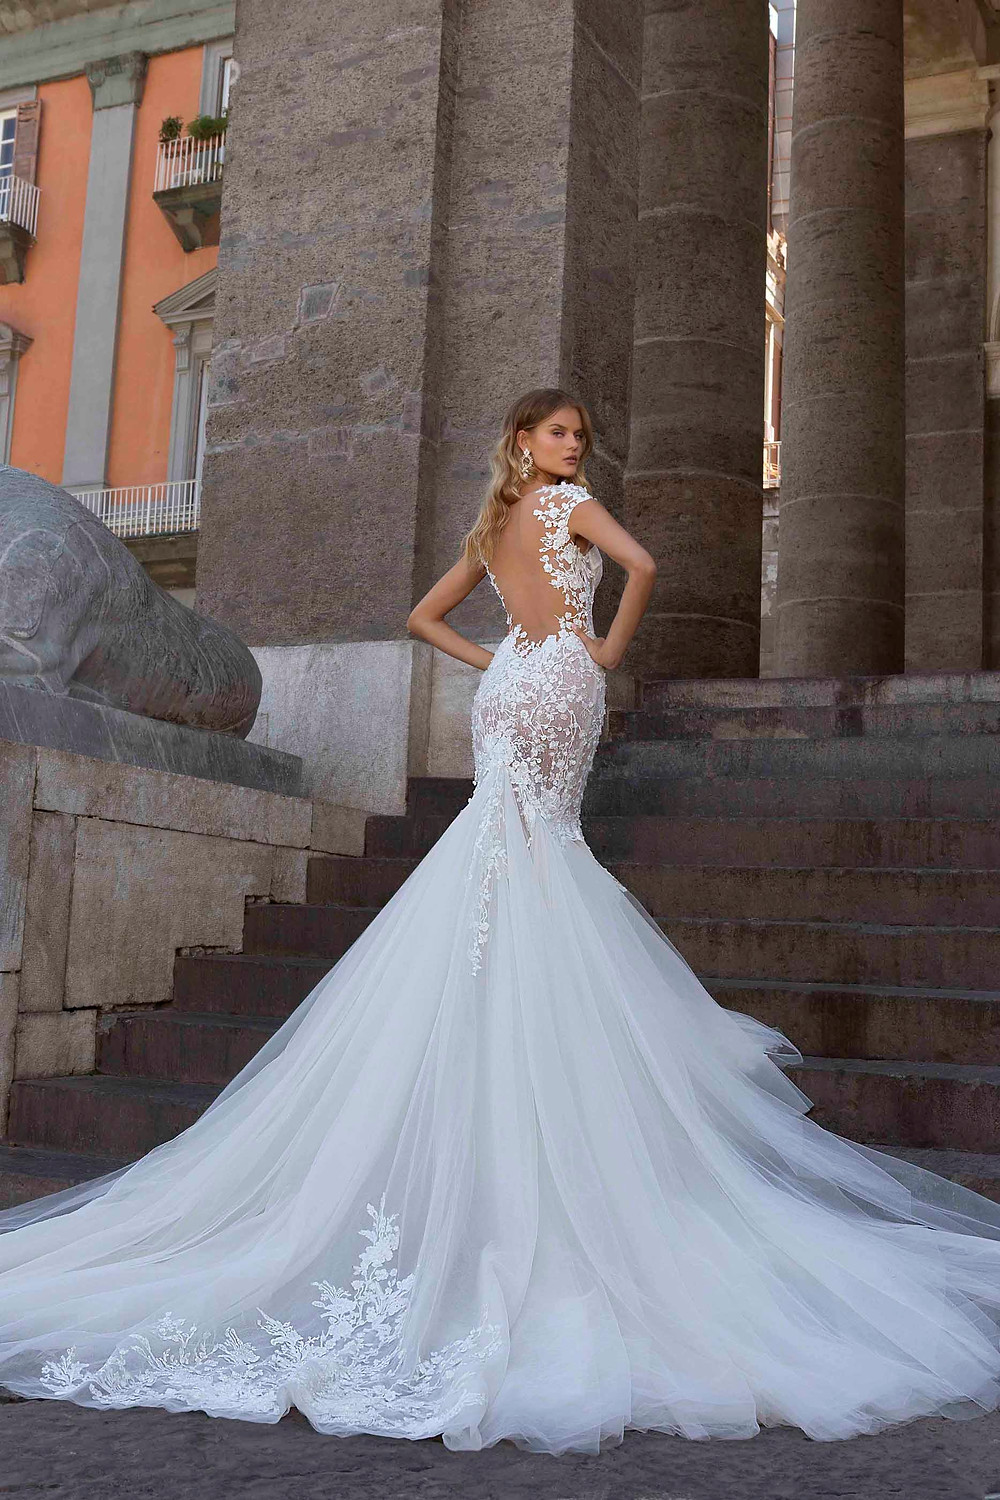 A lace, mermaid wedding dress with tulle skirt and illusion back